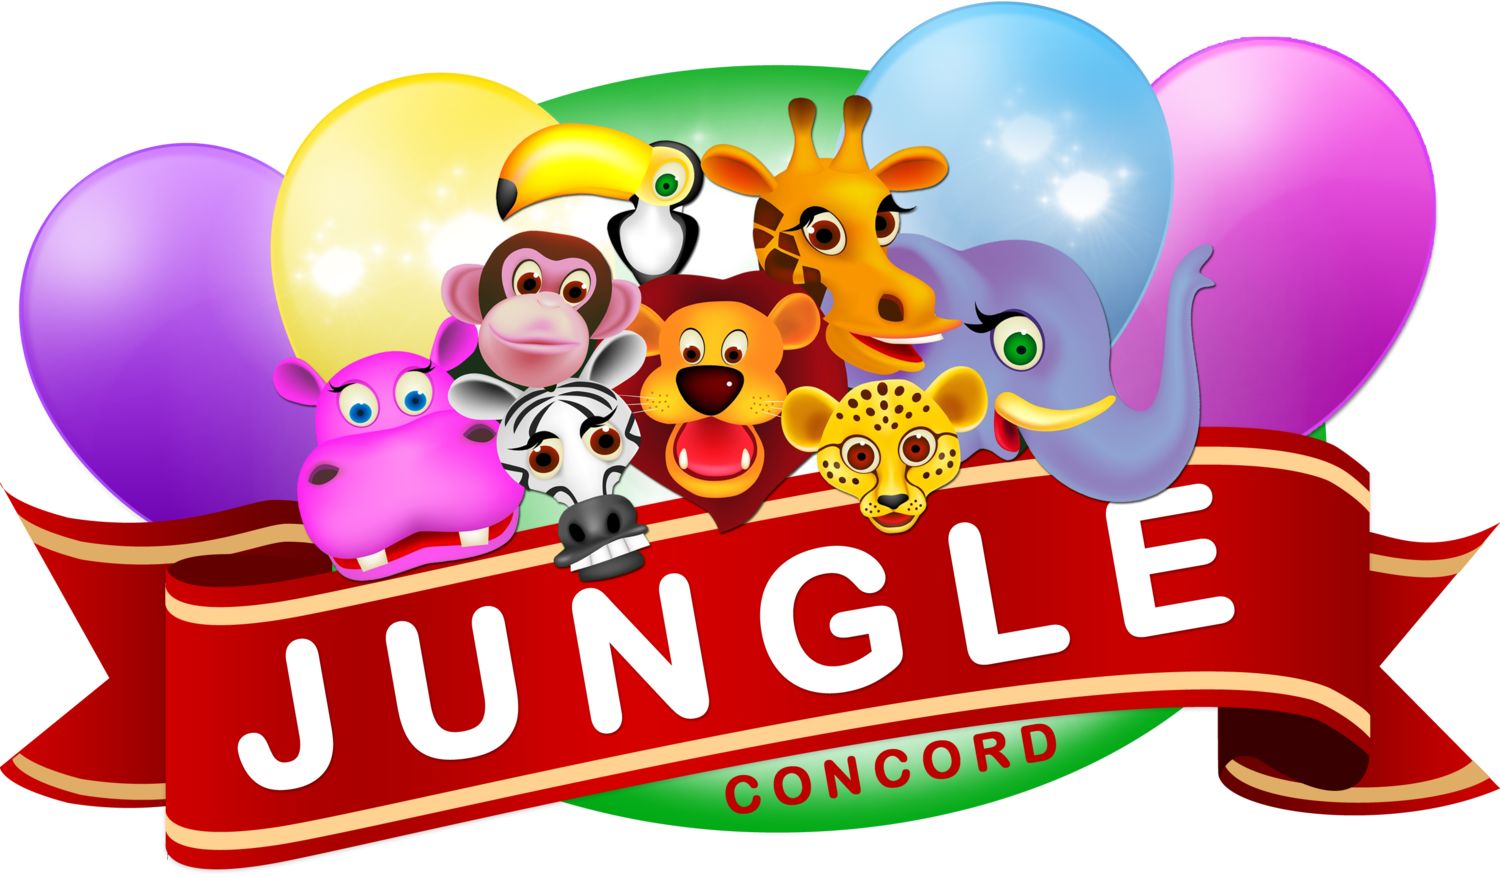 Jungle Concord The Jungle concord offers the best indoor play ...